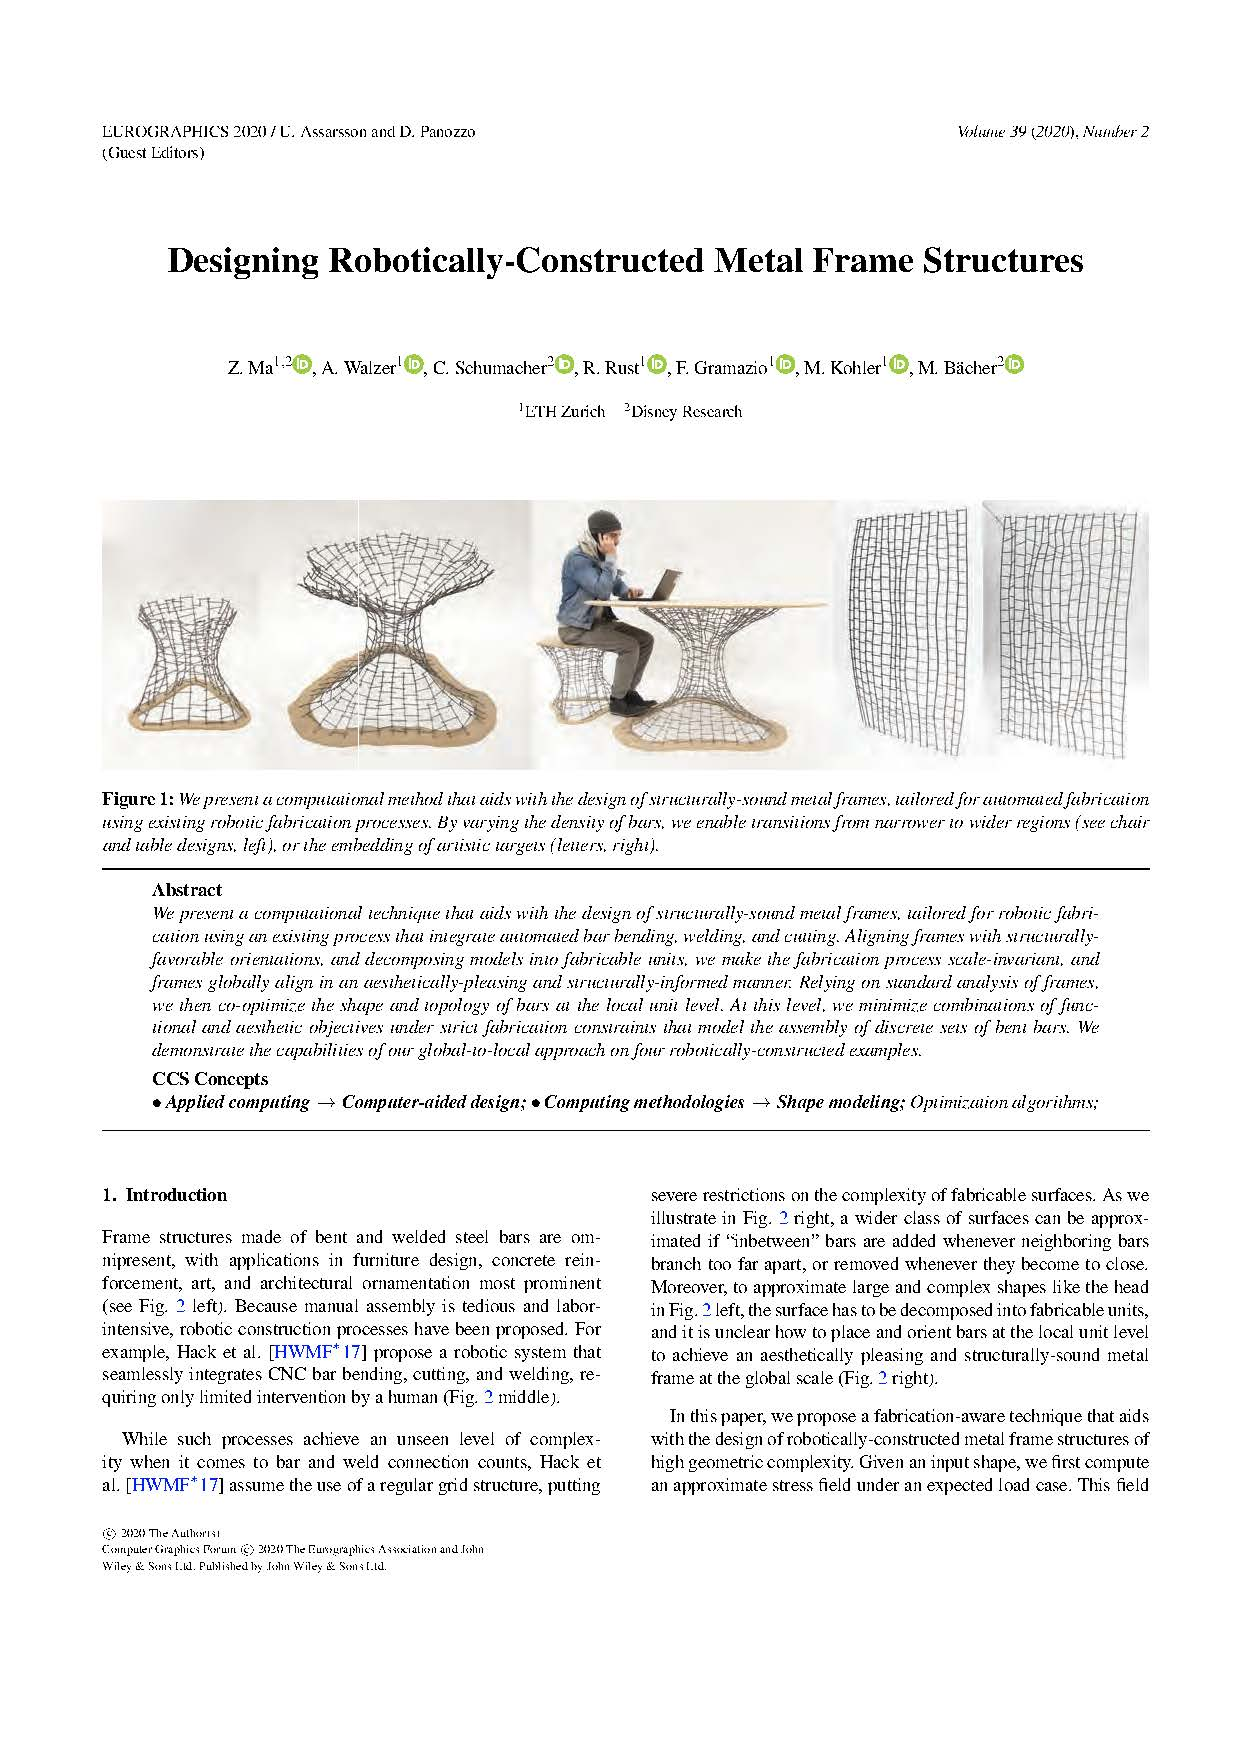 Designing-Robotically-Constructed-Metal-Frame-Structures